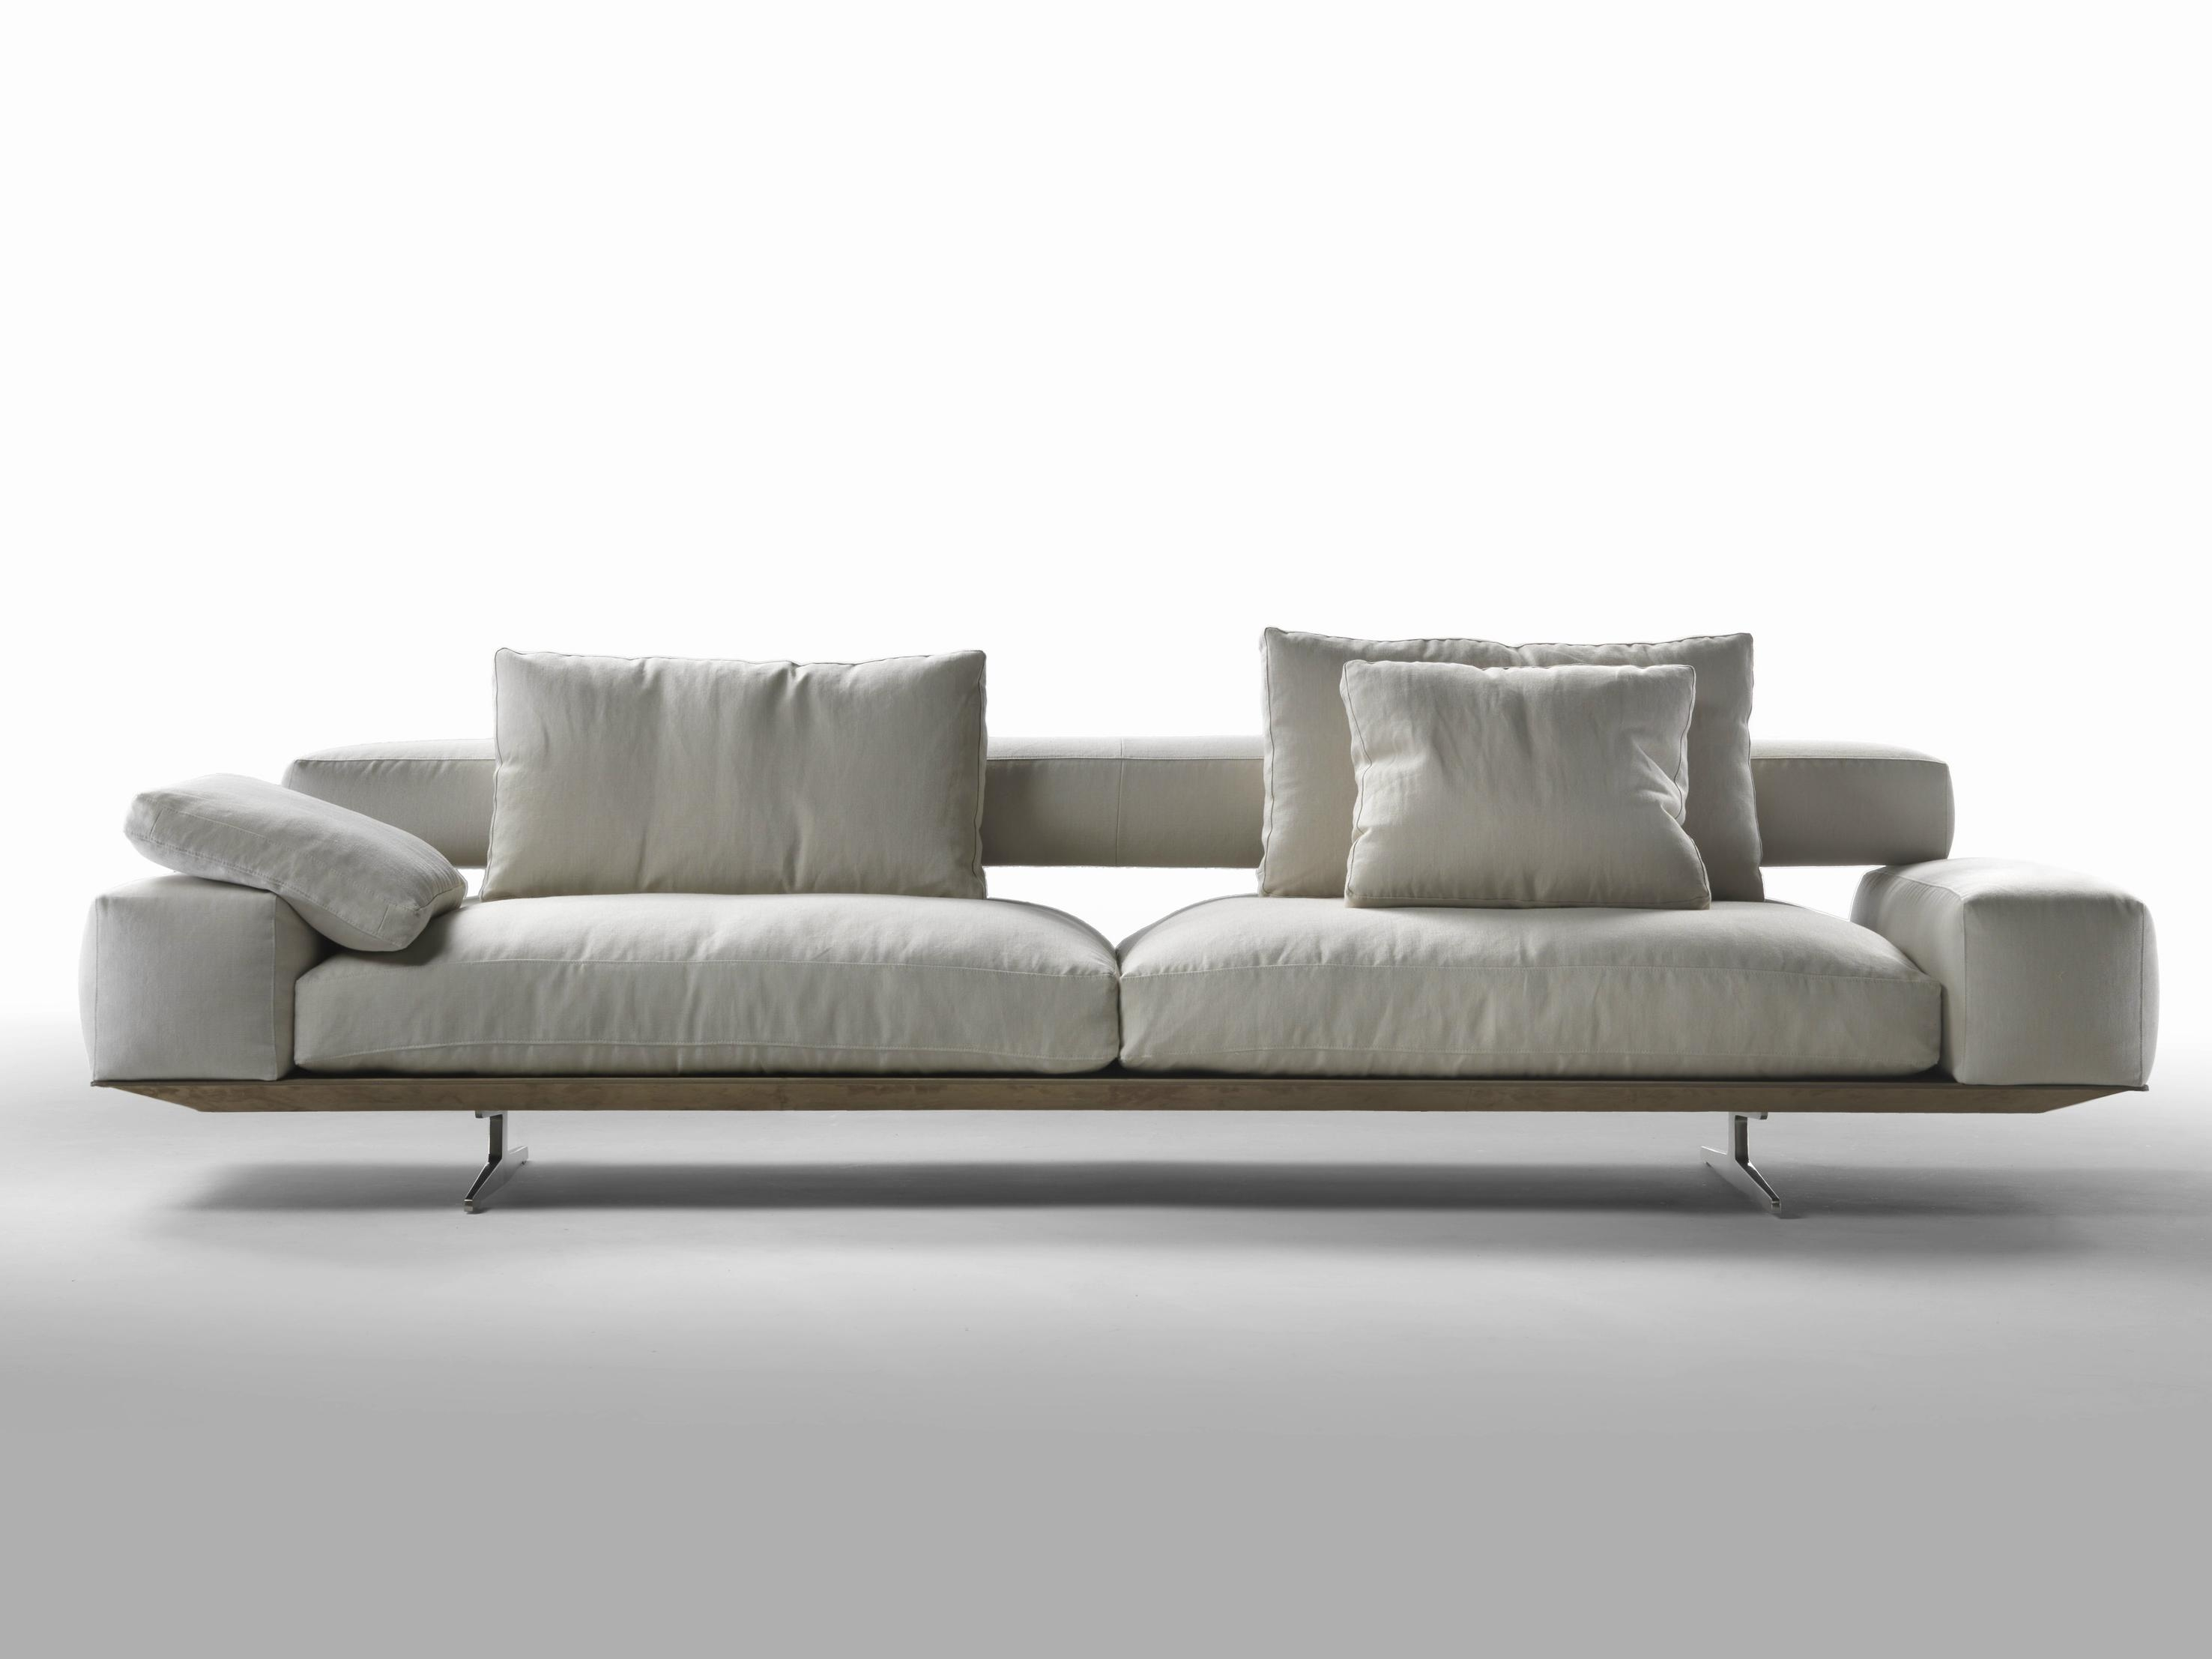 Wing Sofaantonio Citterio For Flexform | Sohomod Blog Throughout Flexform Sofas (View 6 of 20)